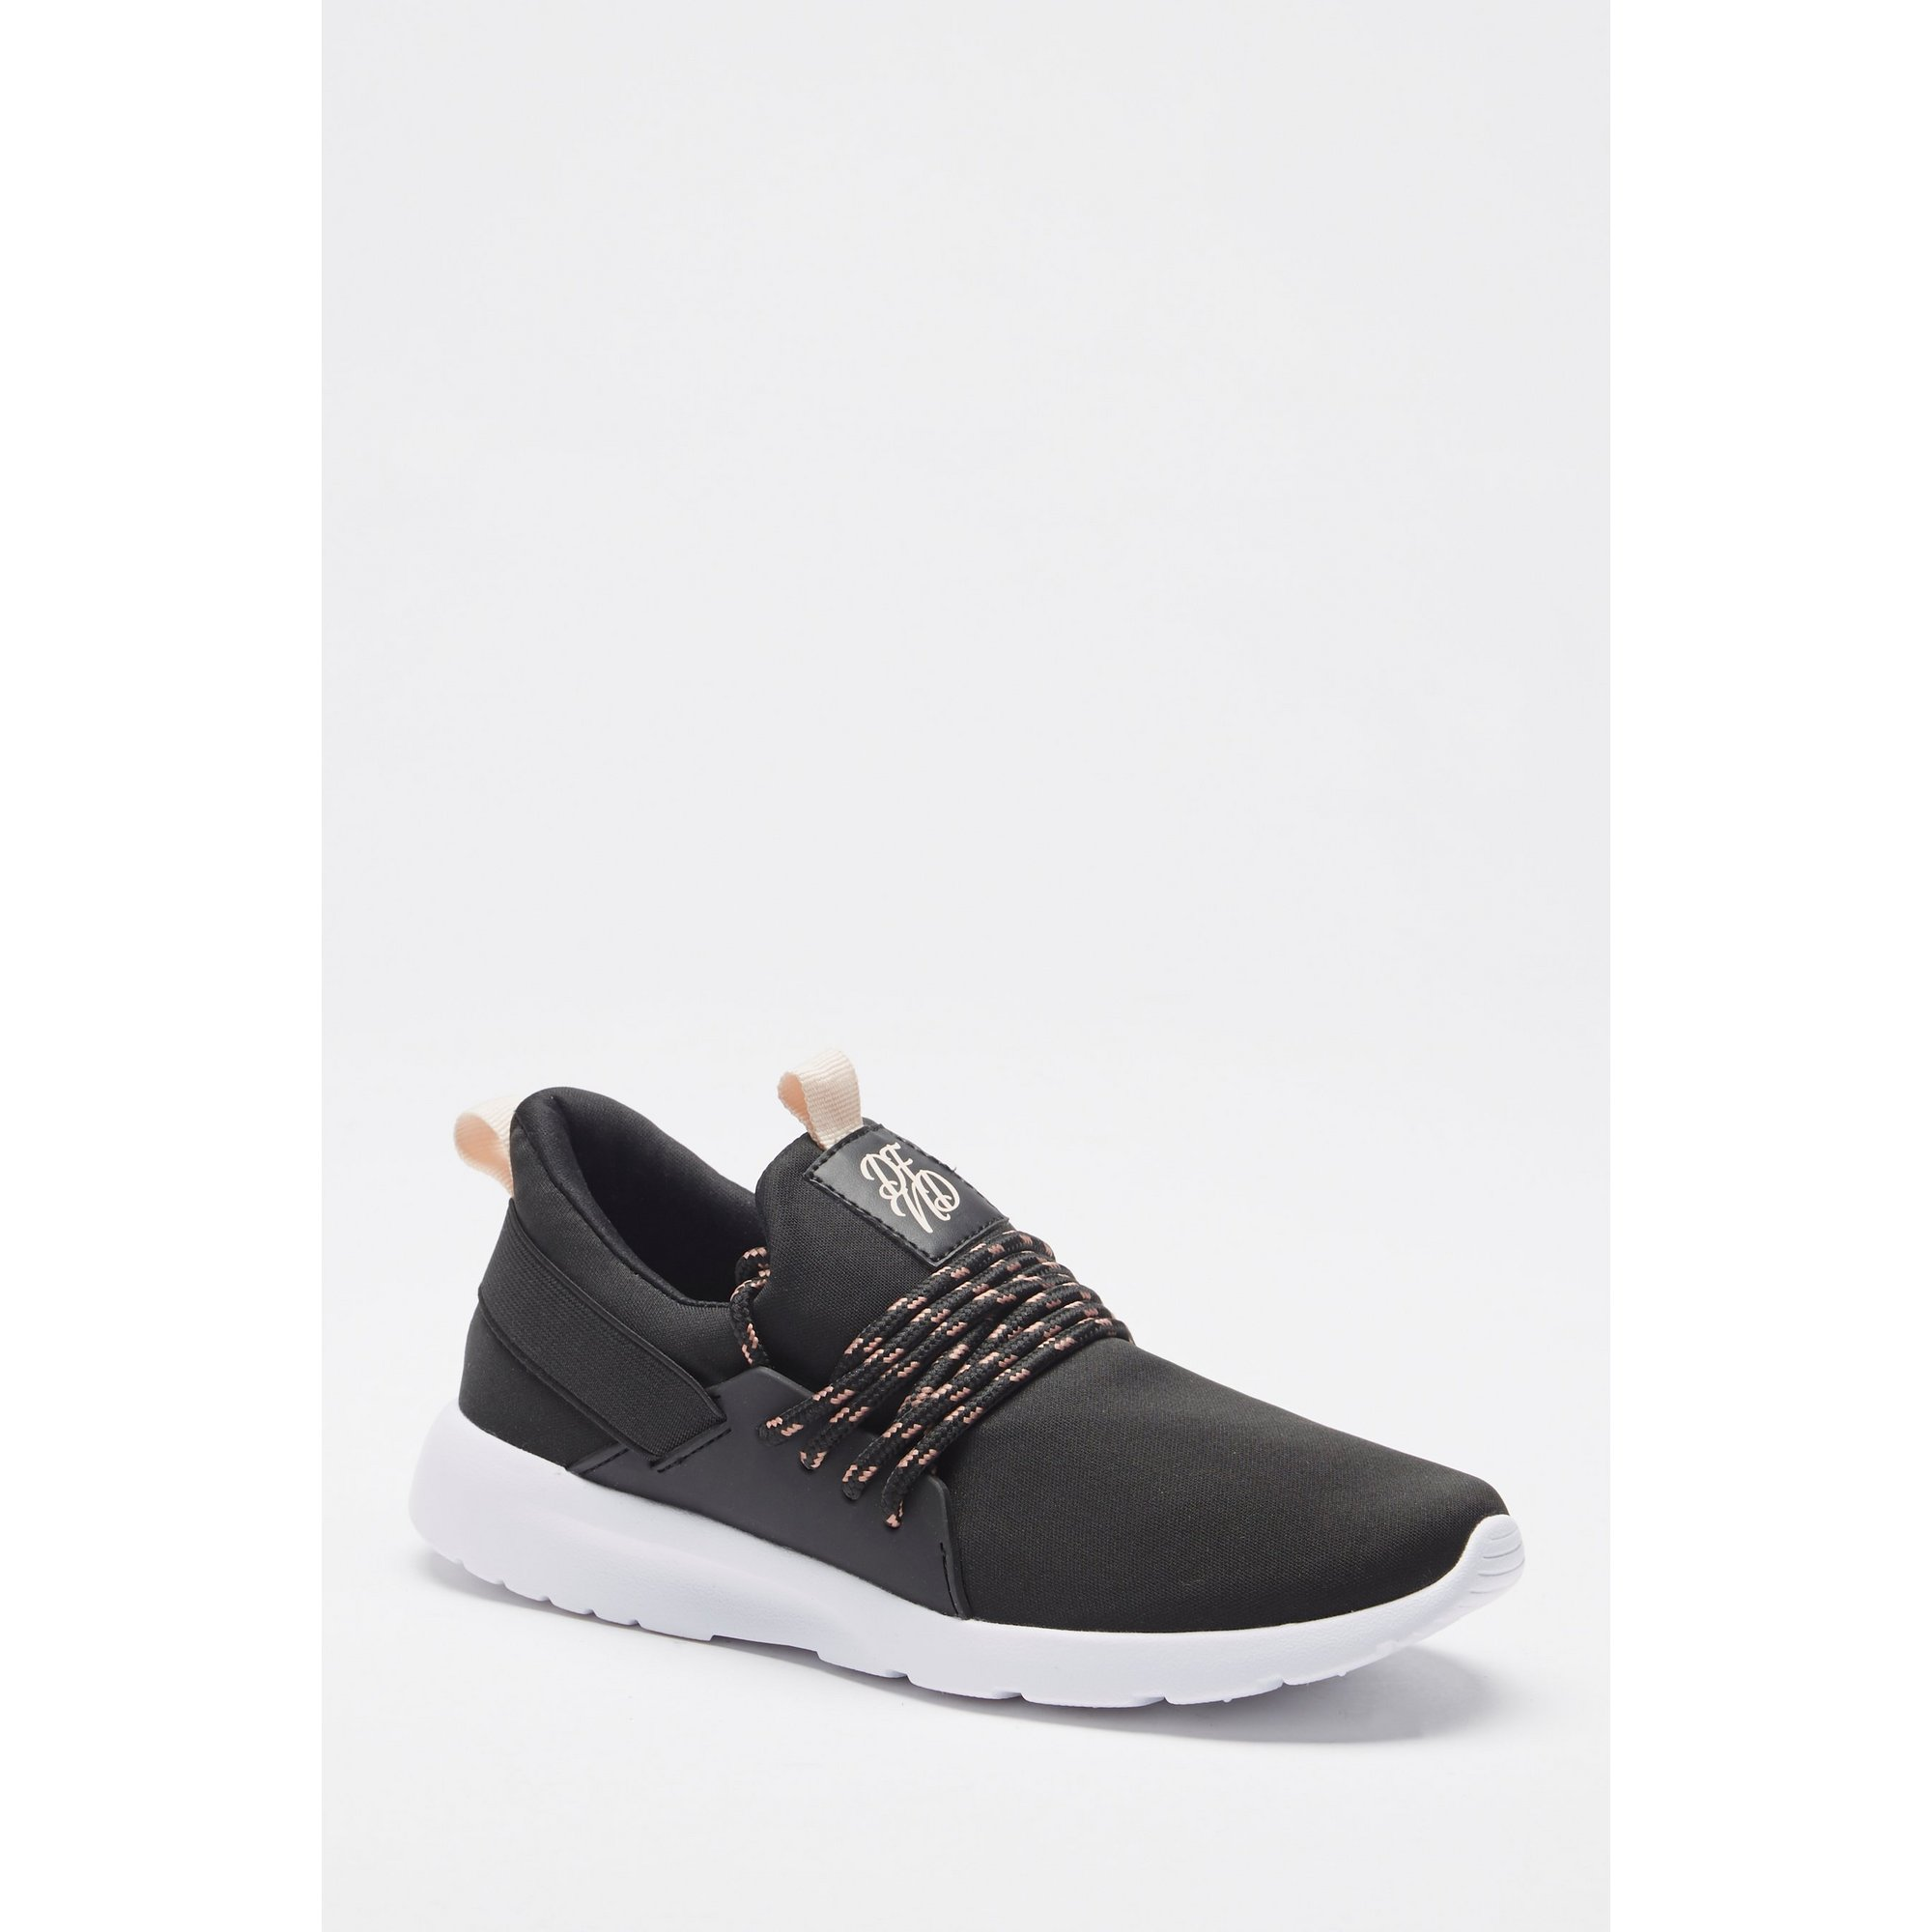 Image of DFND Slip-On Black Trainers